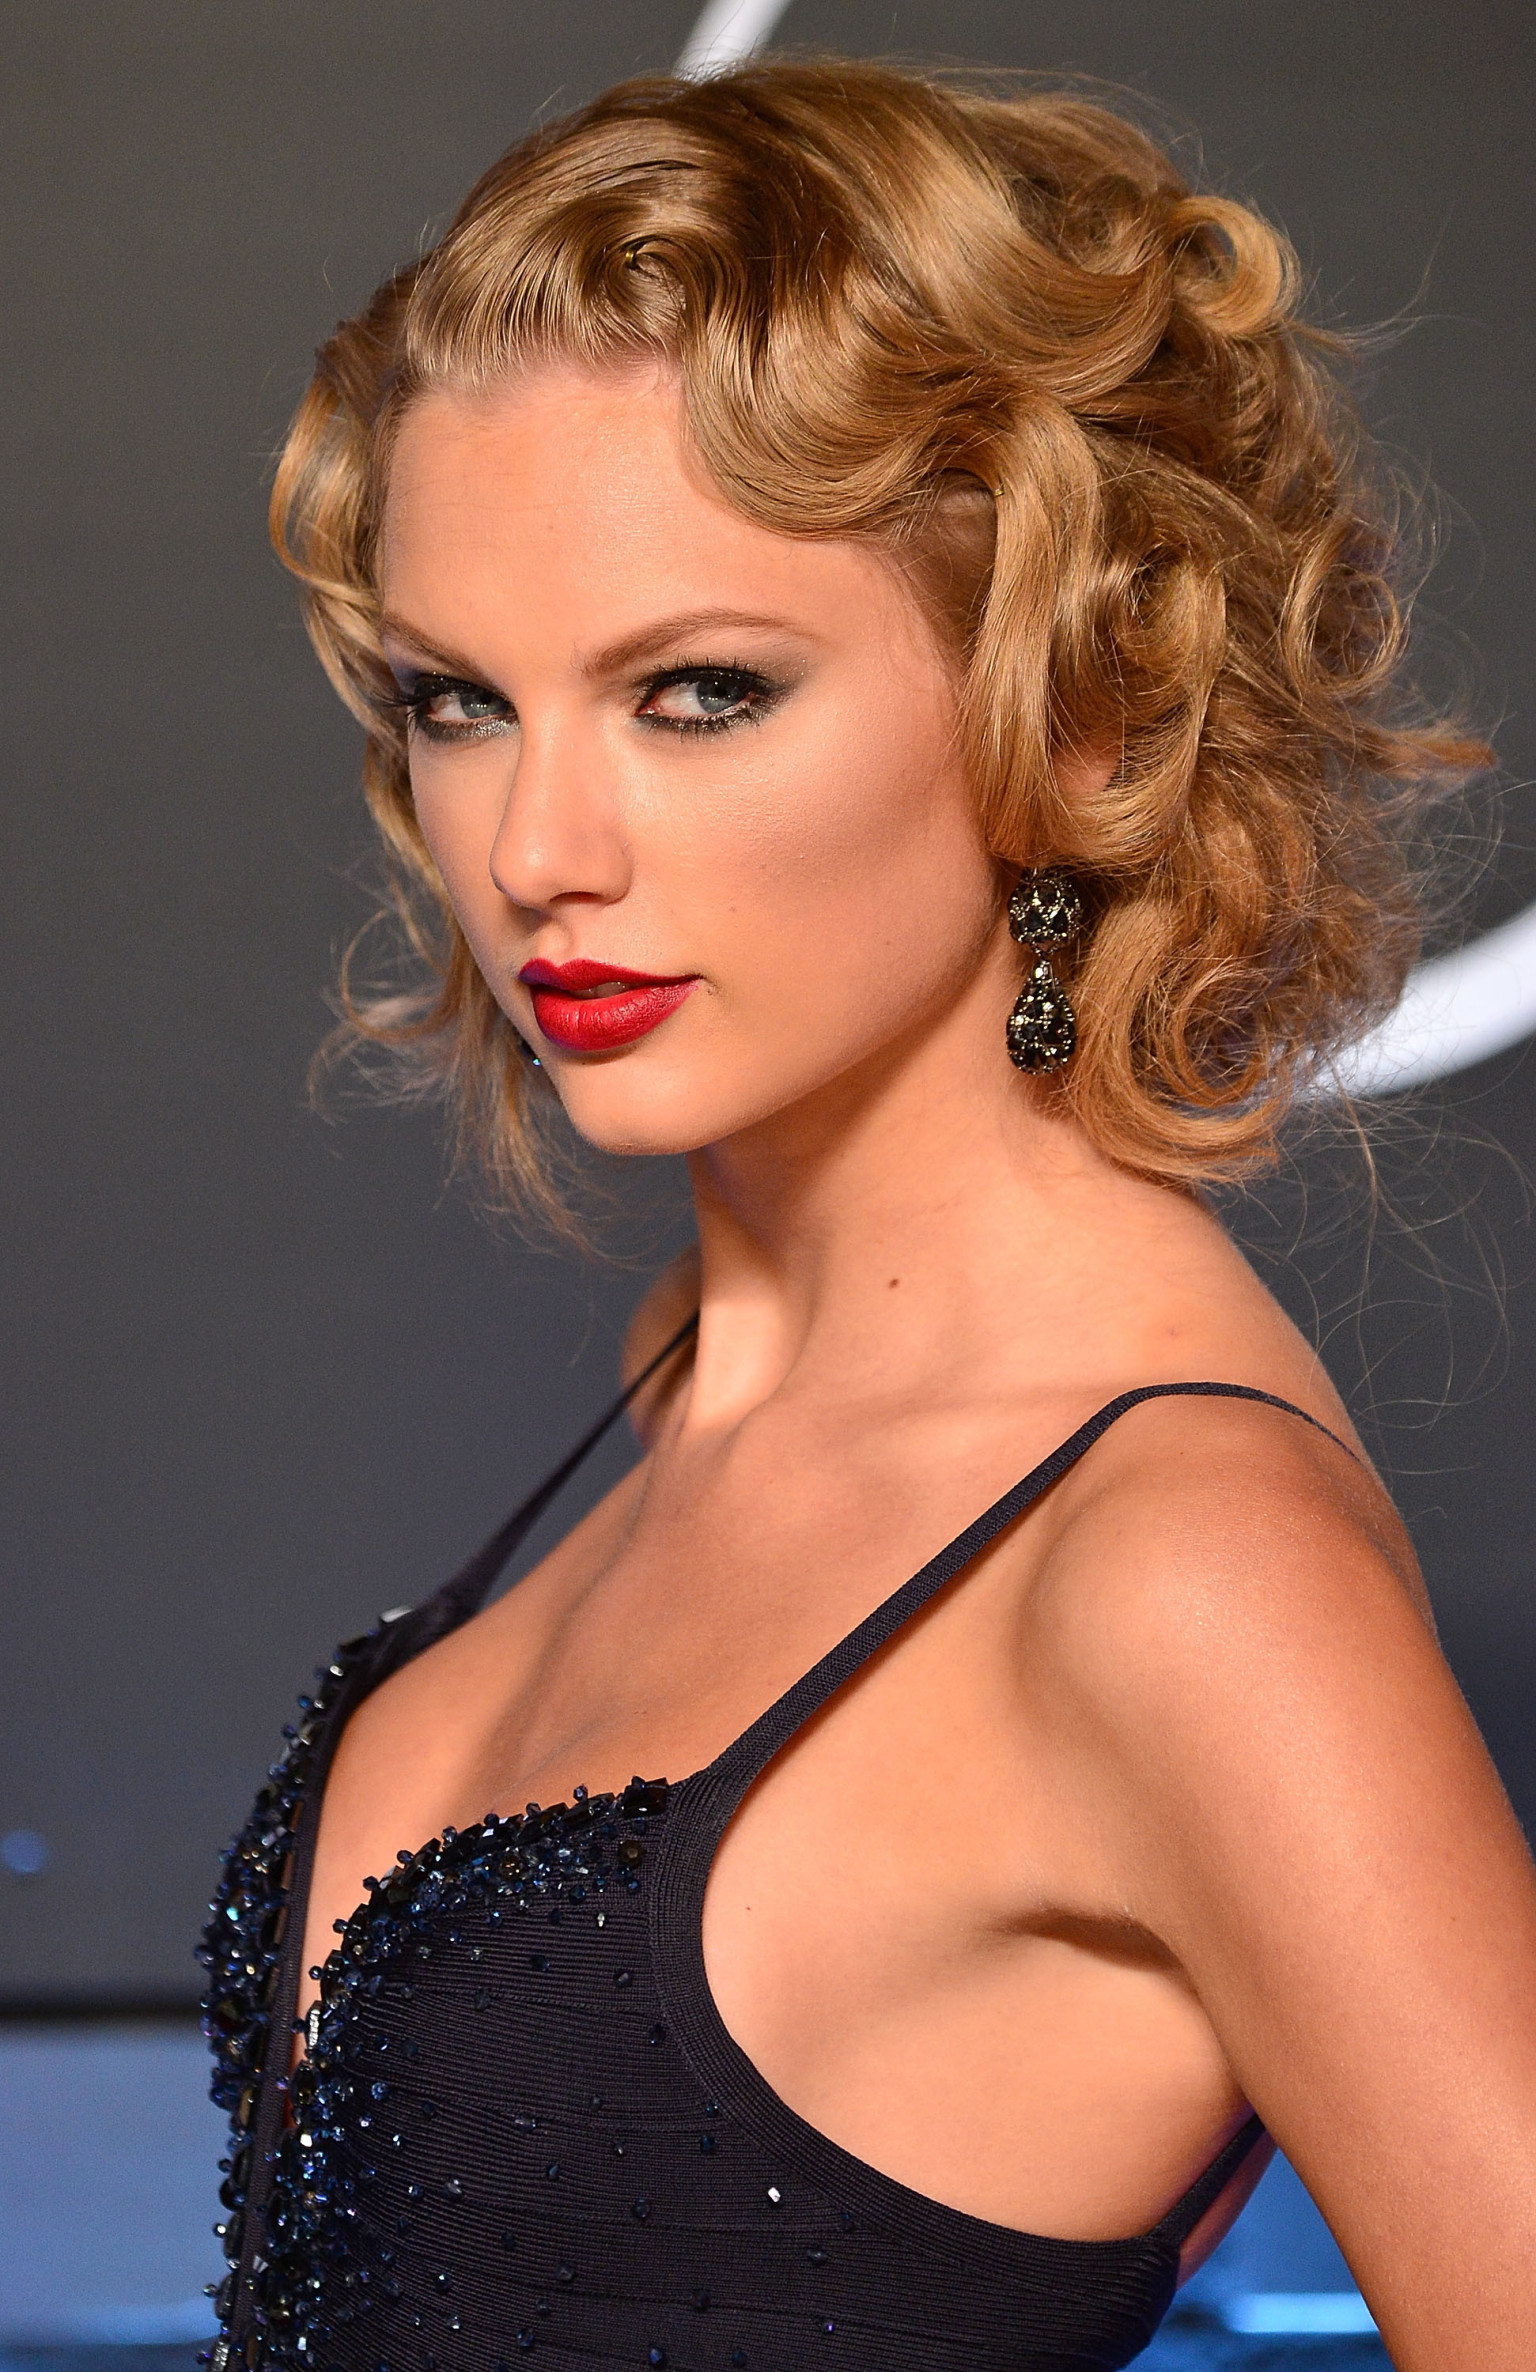 Taylor Swift U0026 39 S Vma Diss Was Misinterpreted  Not Aimed At